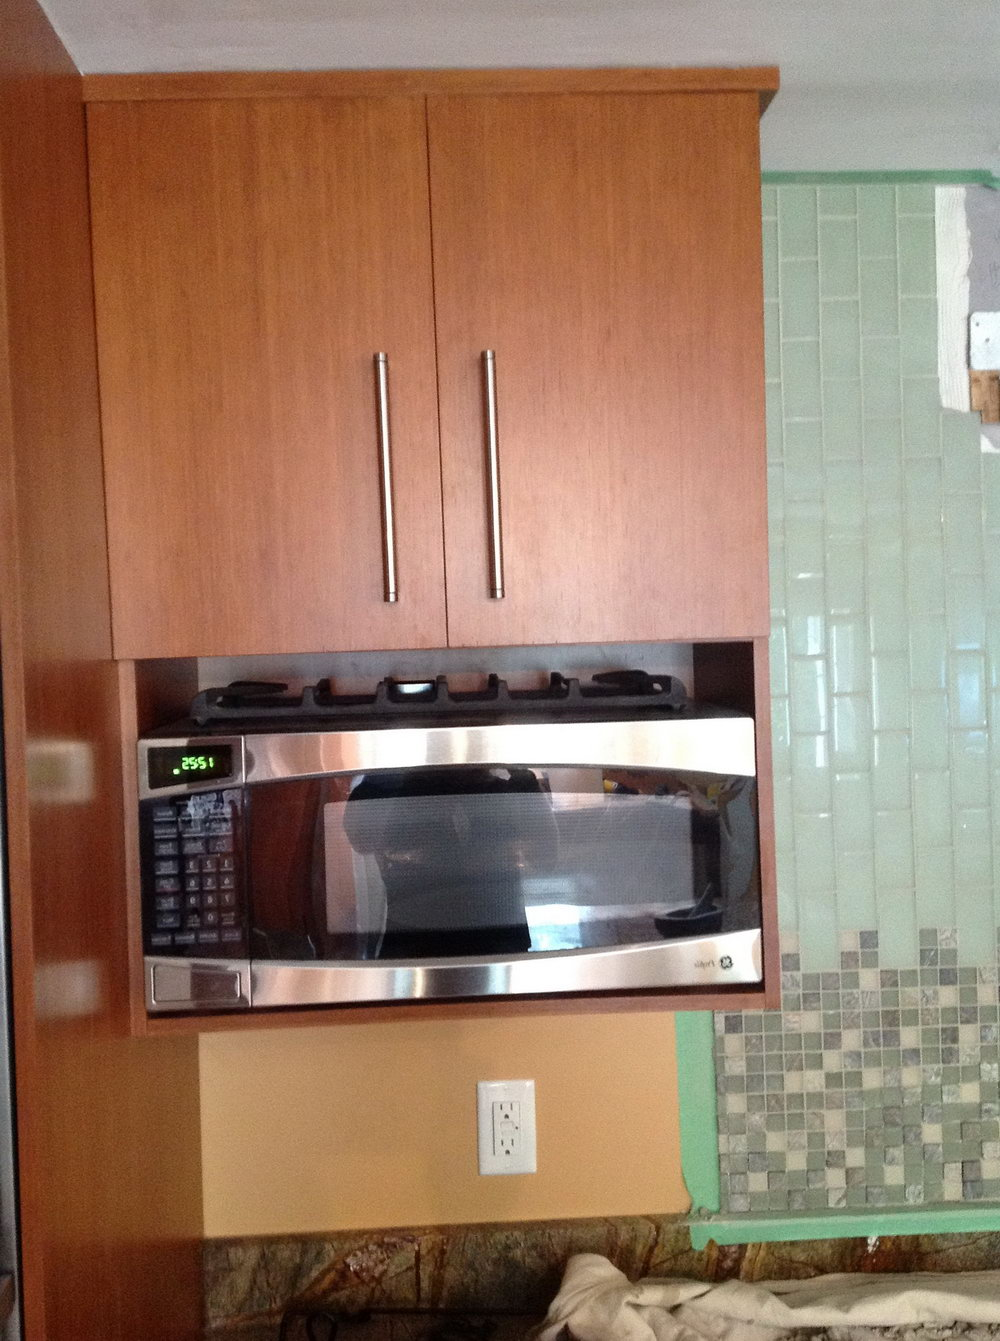 Microwave In Upper Kitchen Cabinet